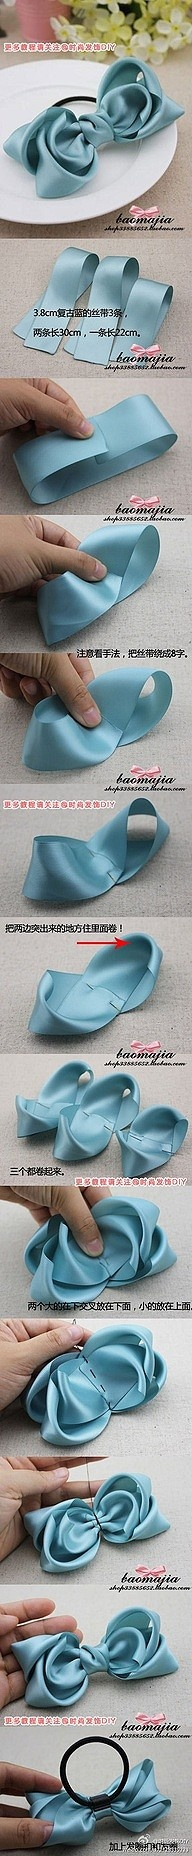 How to make a cute triple layered bow!